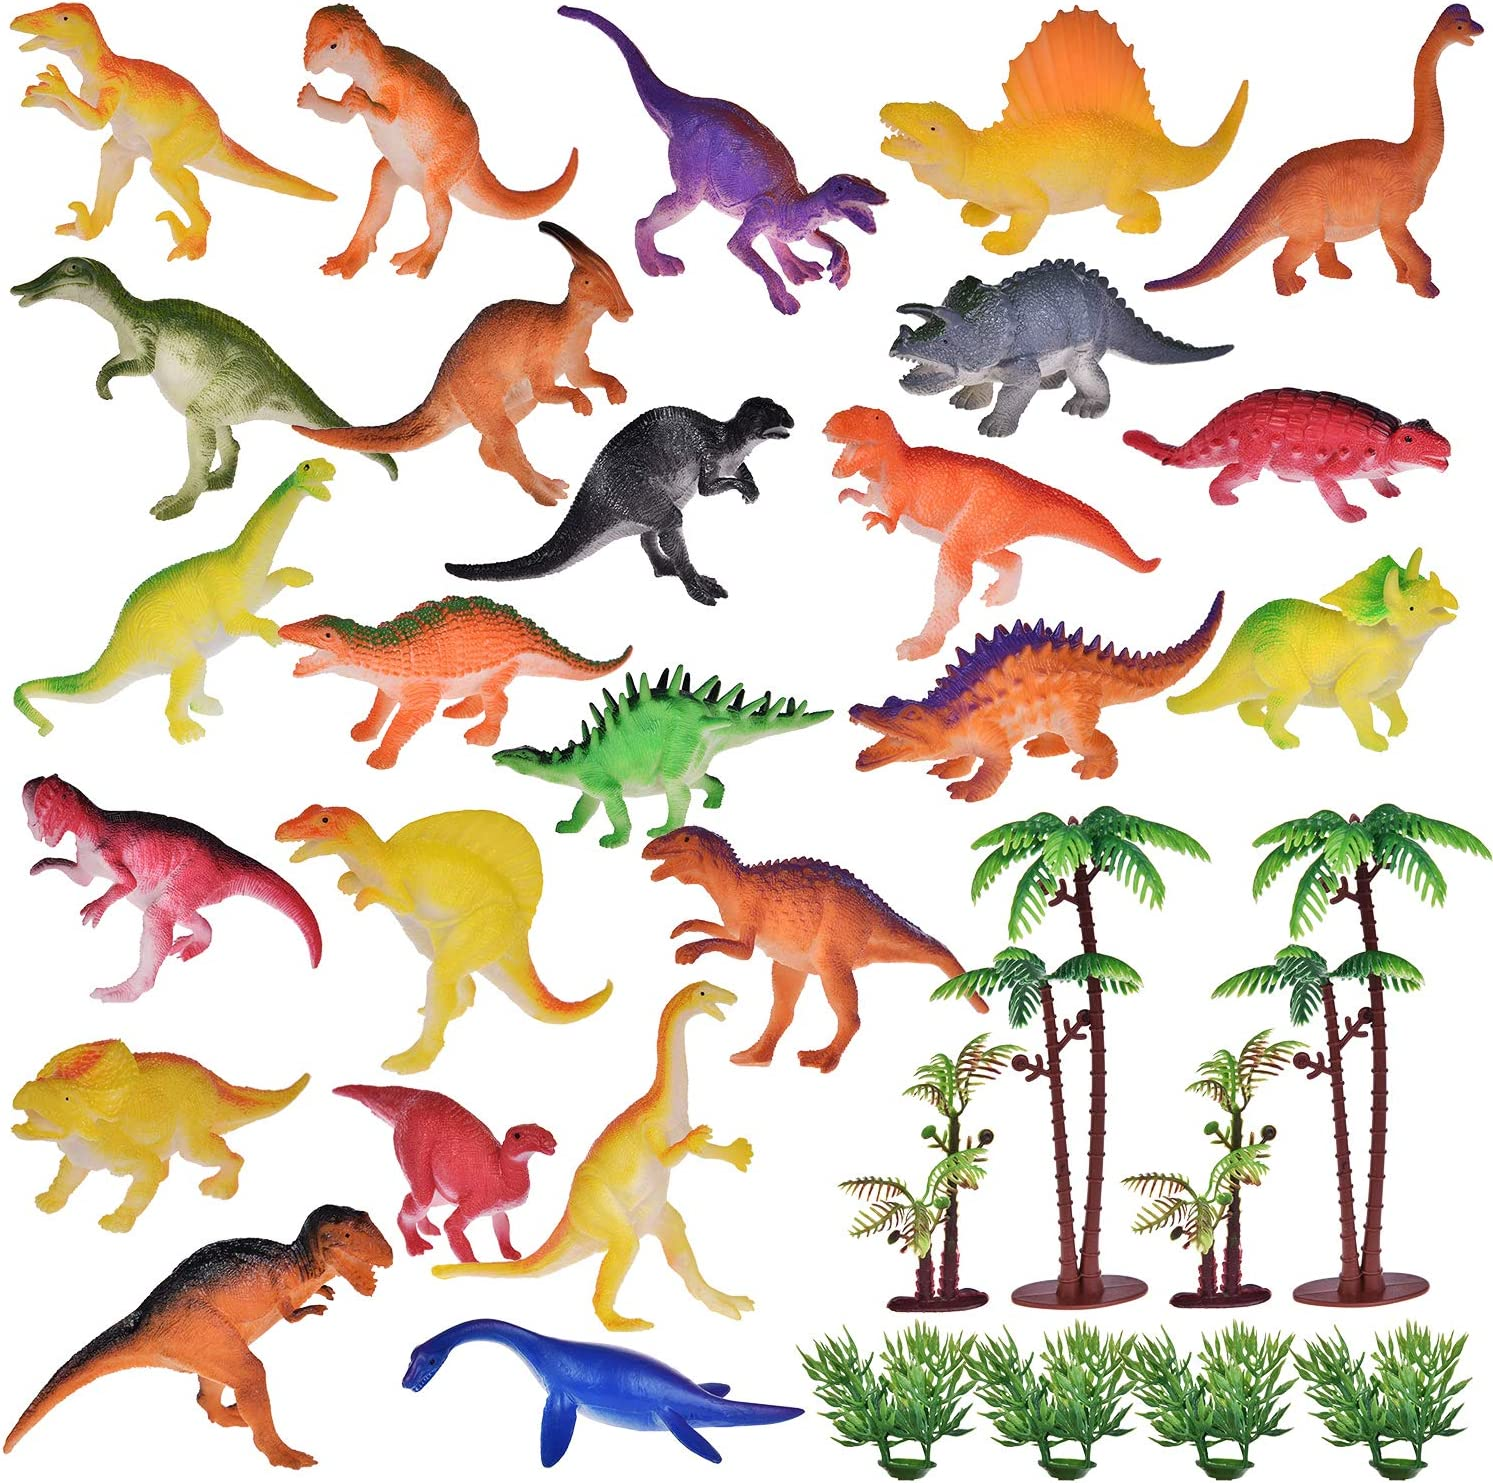 Best Choices for Goodie Bag Fillers Kids Prizes Kids Party Favors FUN LITTLE TOYS 32PCs Mini Toy Dinosaurs